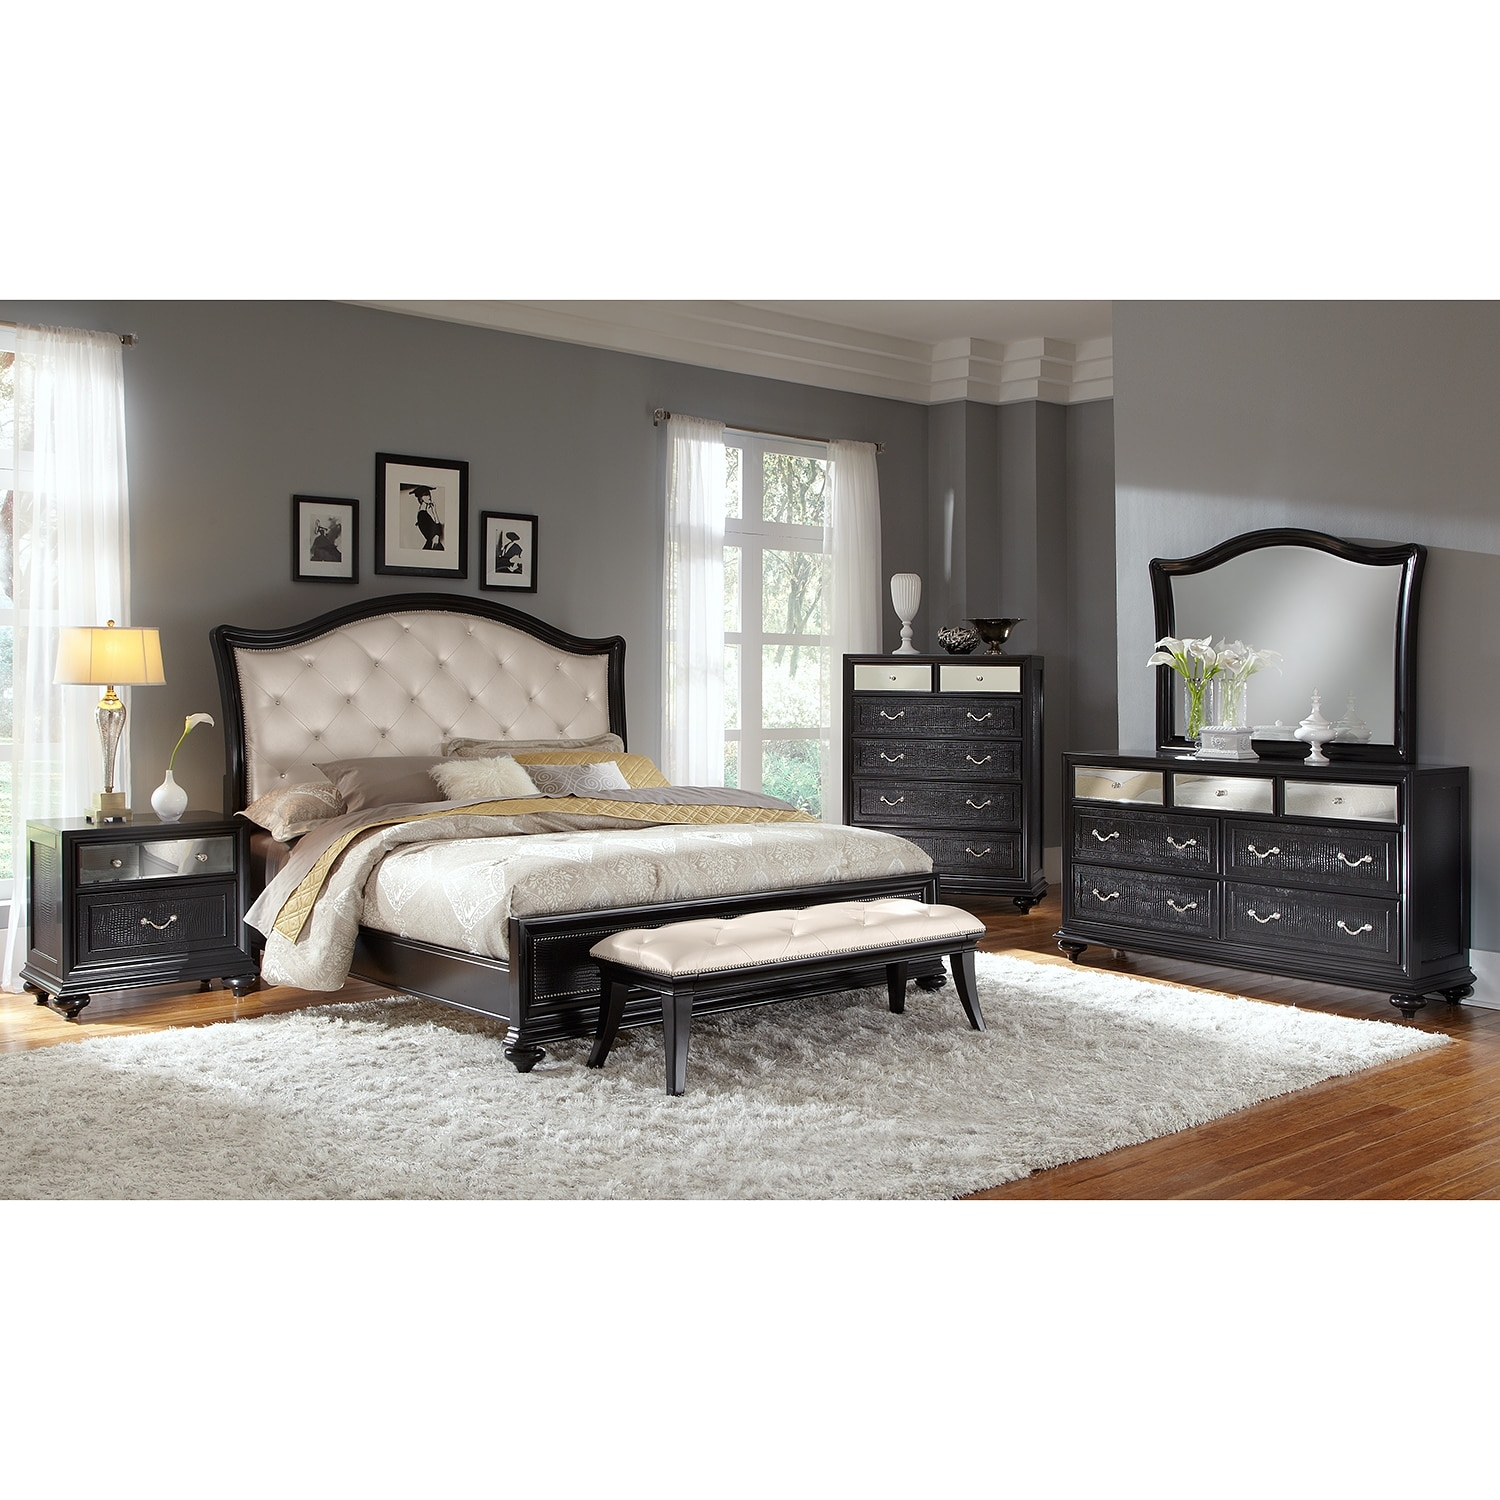 Marilyn queen bed value city furniture for Bedroom furniture beds